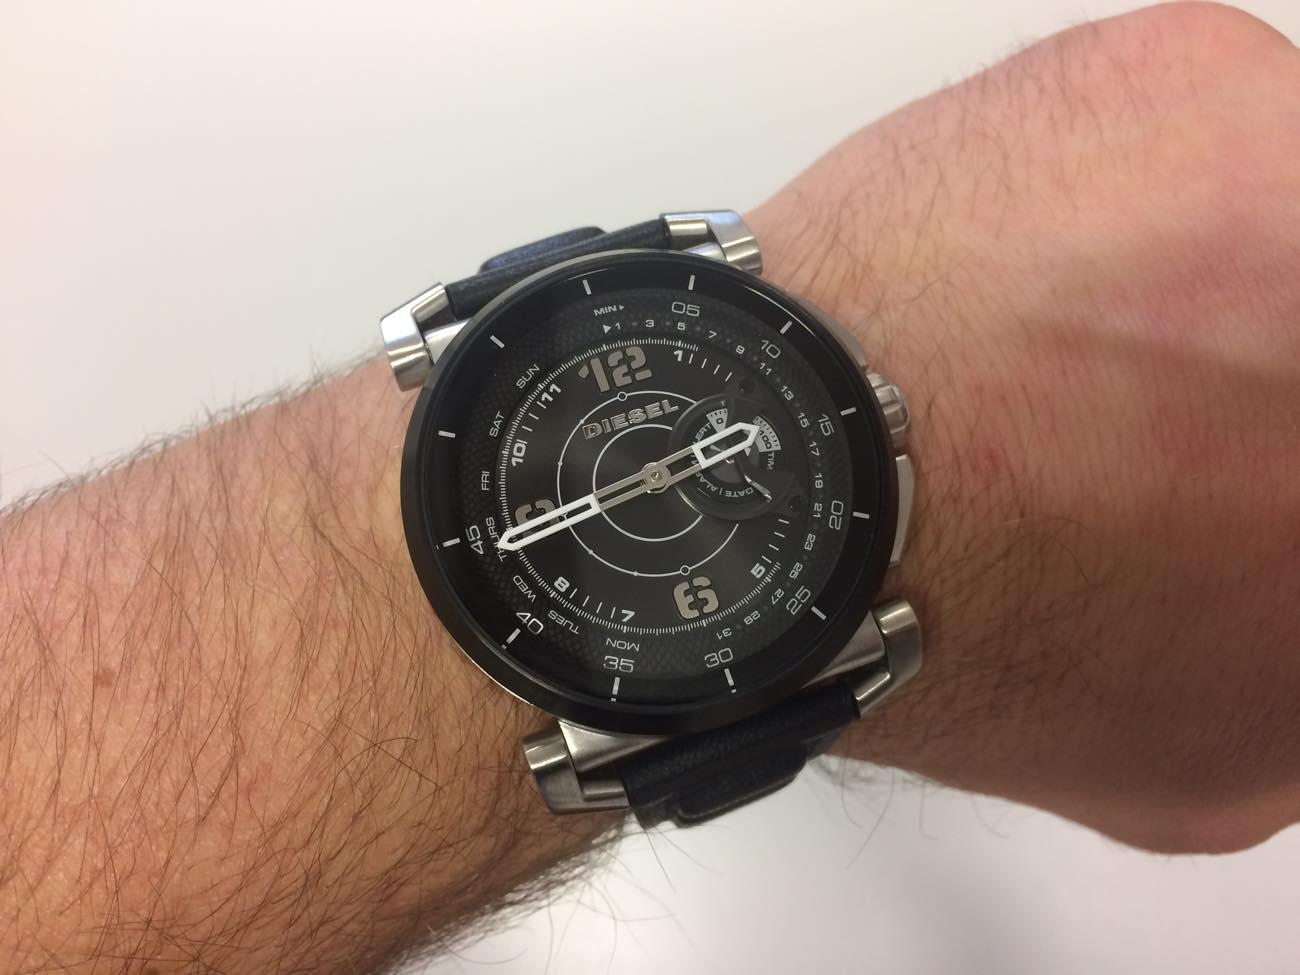 Diesel DieselOn Time Hybrid Smartwatch am Arm